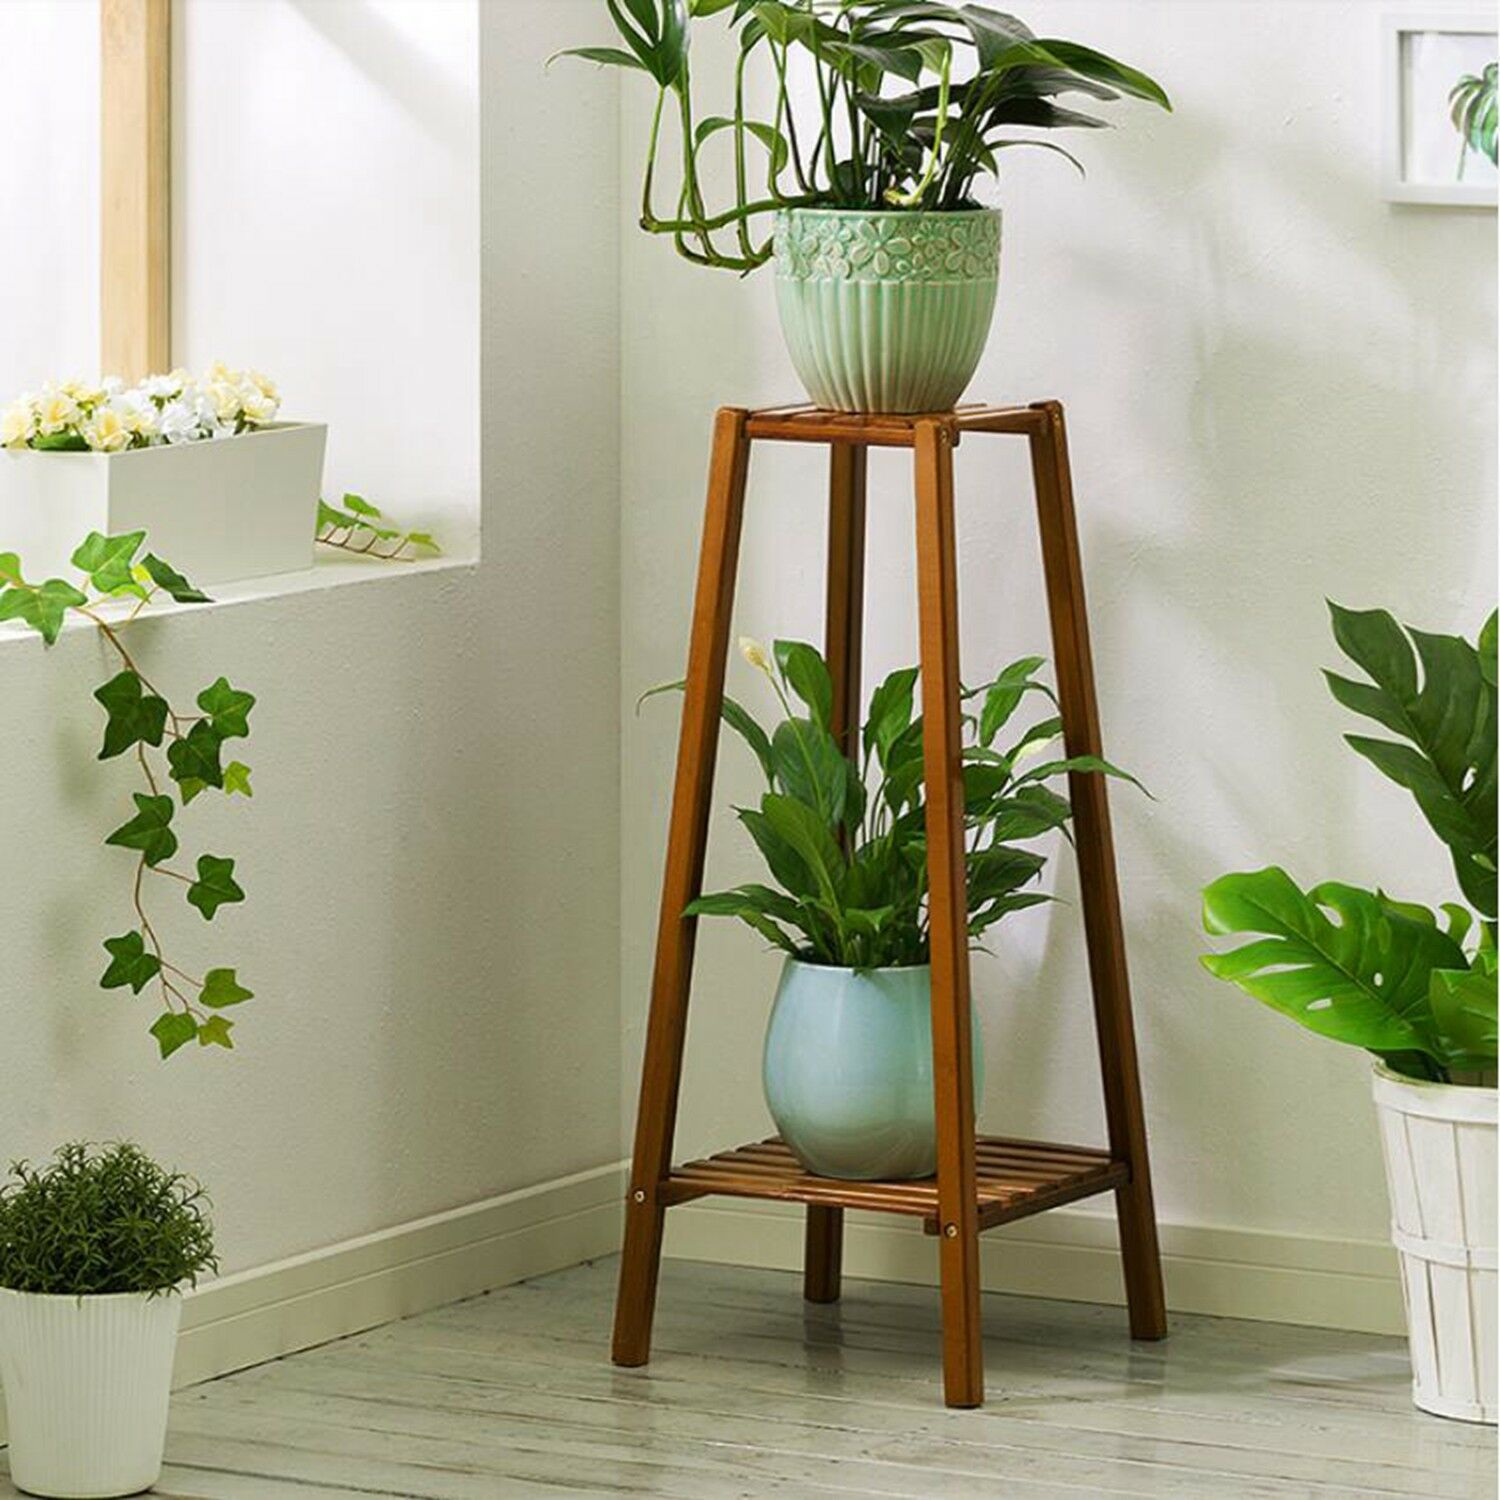 Simple pyramid looking wooden flower stand